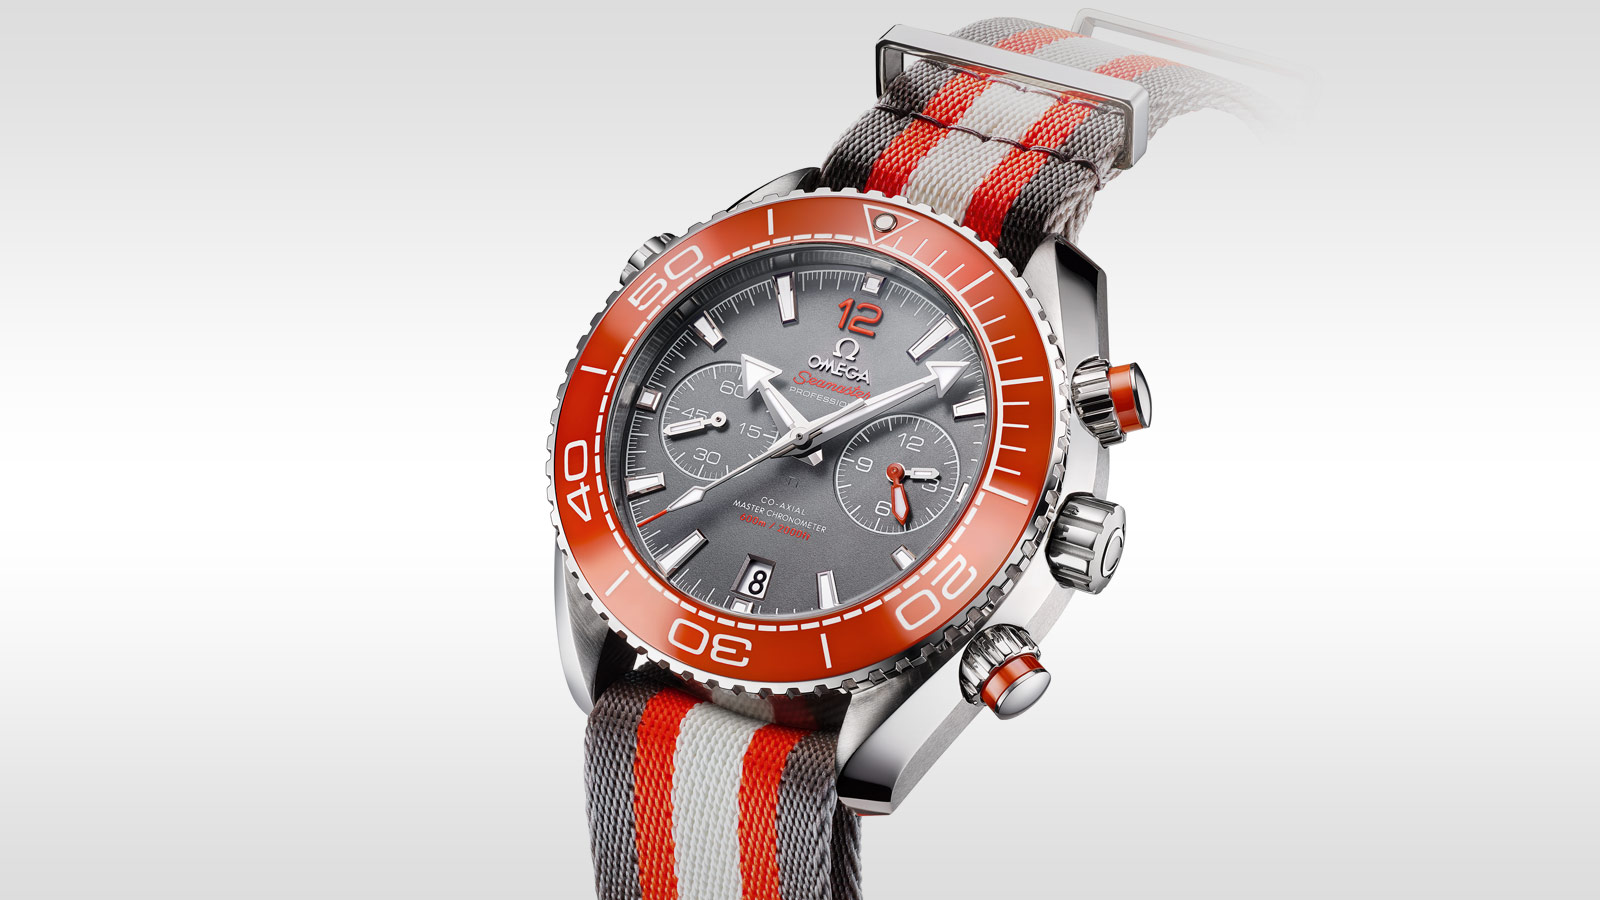 Seamaster プラネットオーシャン Planet Ocean 600M Omega Co‑Axial Master Chronometer Chronograph 45.5 mm - 215.32.46.51.99.001 - ビュー 1